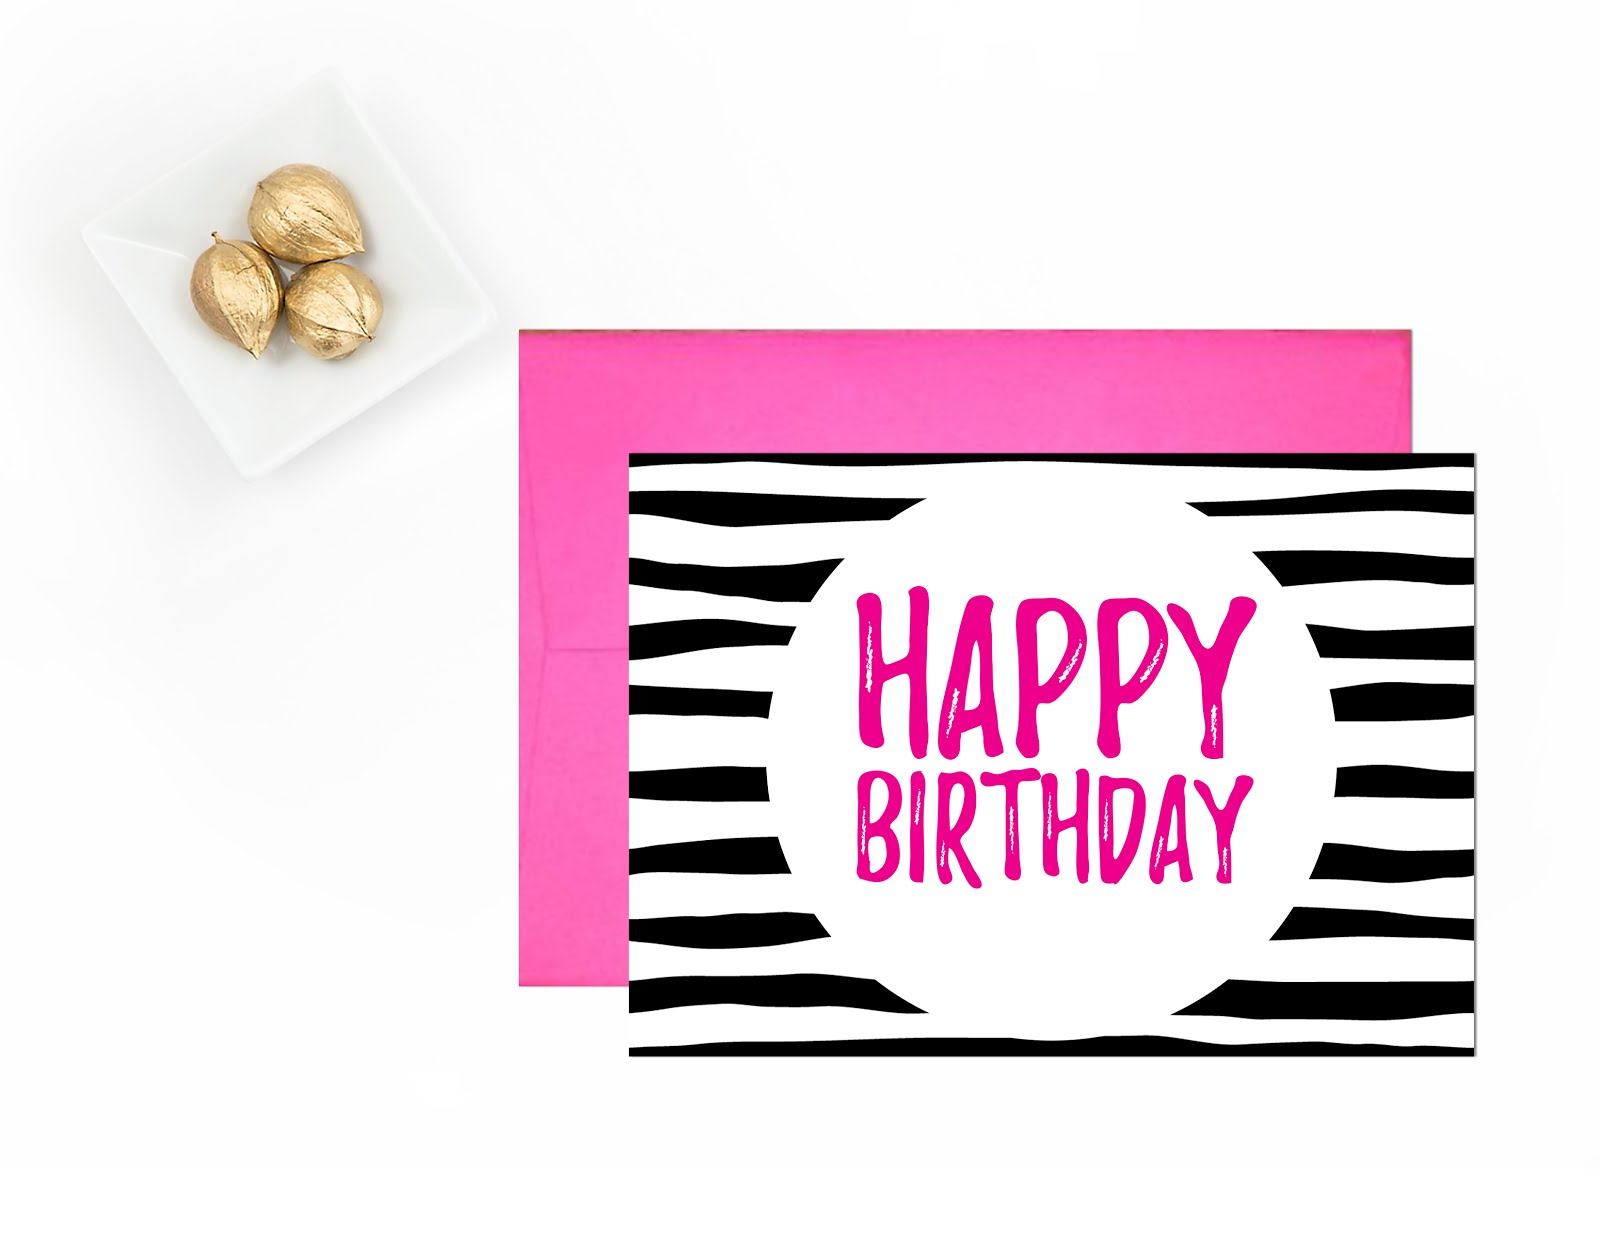 Happy Birthday | Free Printable Greeting Cards - Andree In Wonderland - Happy Birthday Free Cards Printable